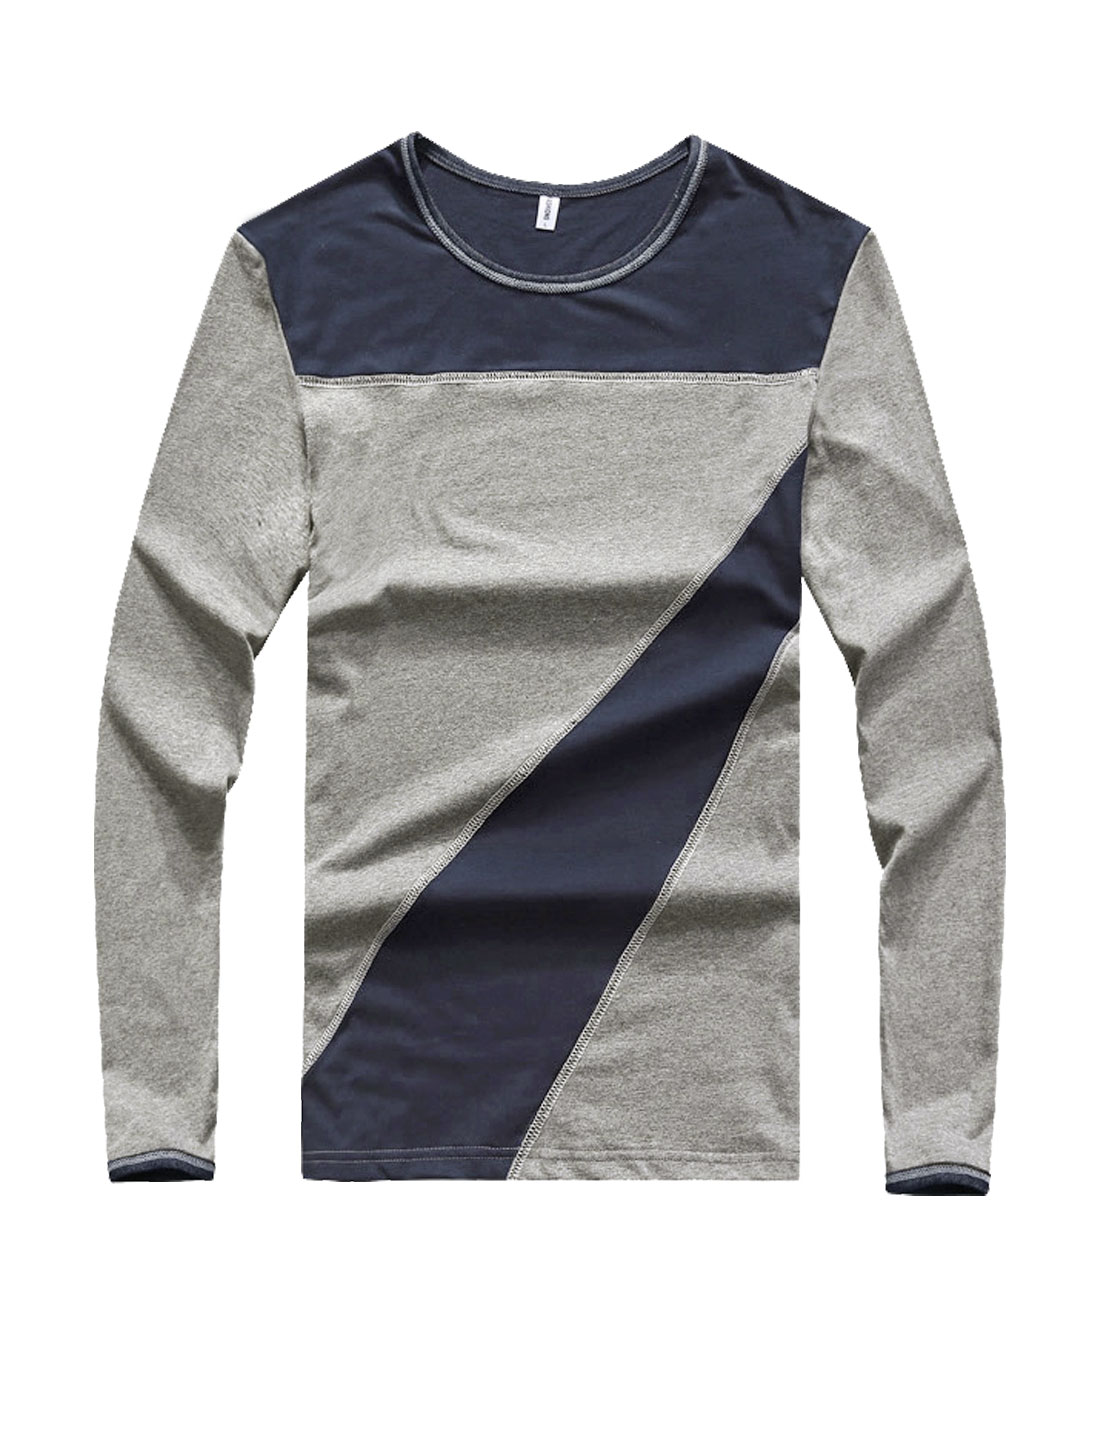 Men Crew Neck Long Sleeves Color Block Slim Fit T-Shirt Dark Gray S